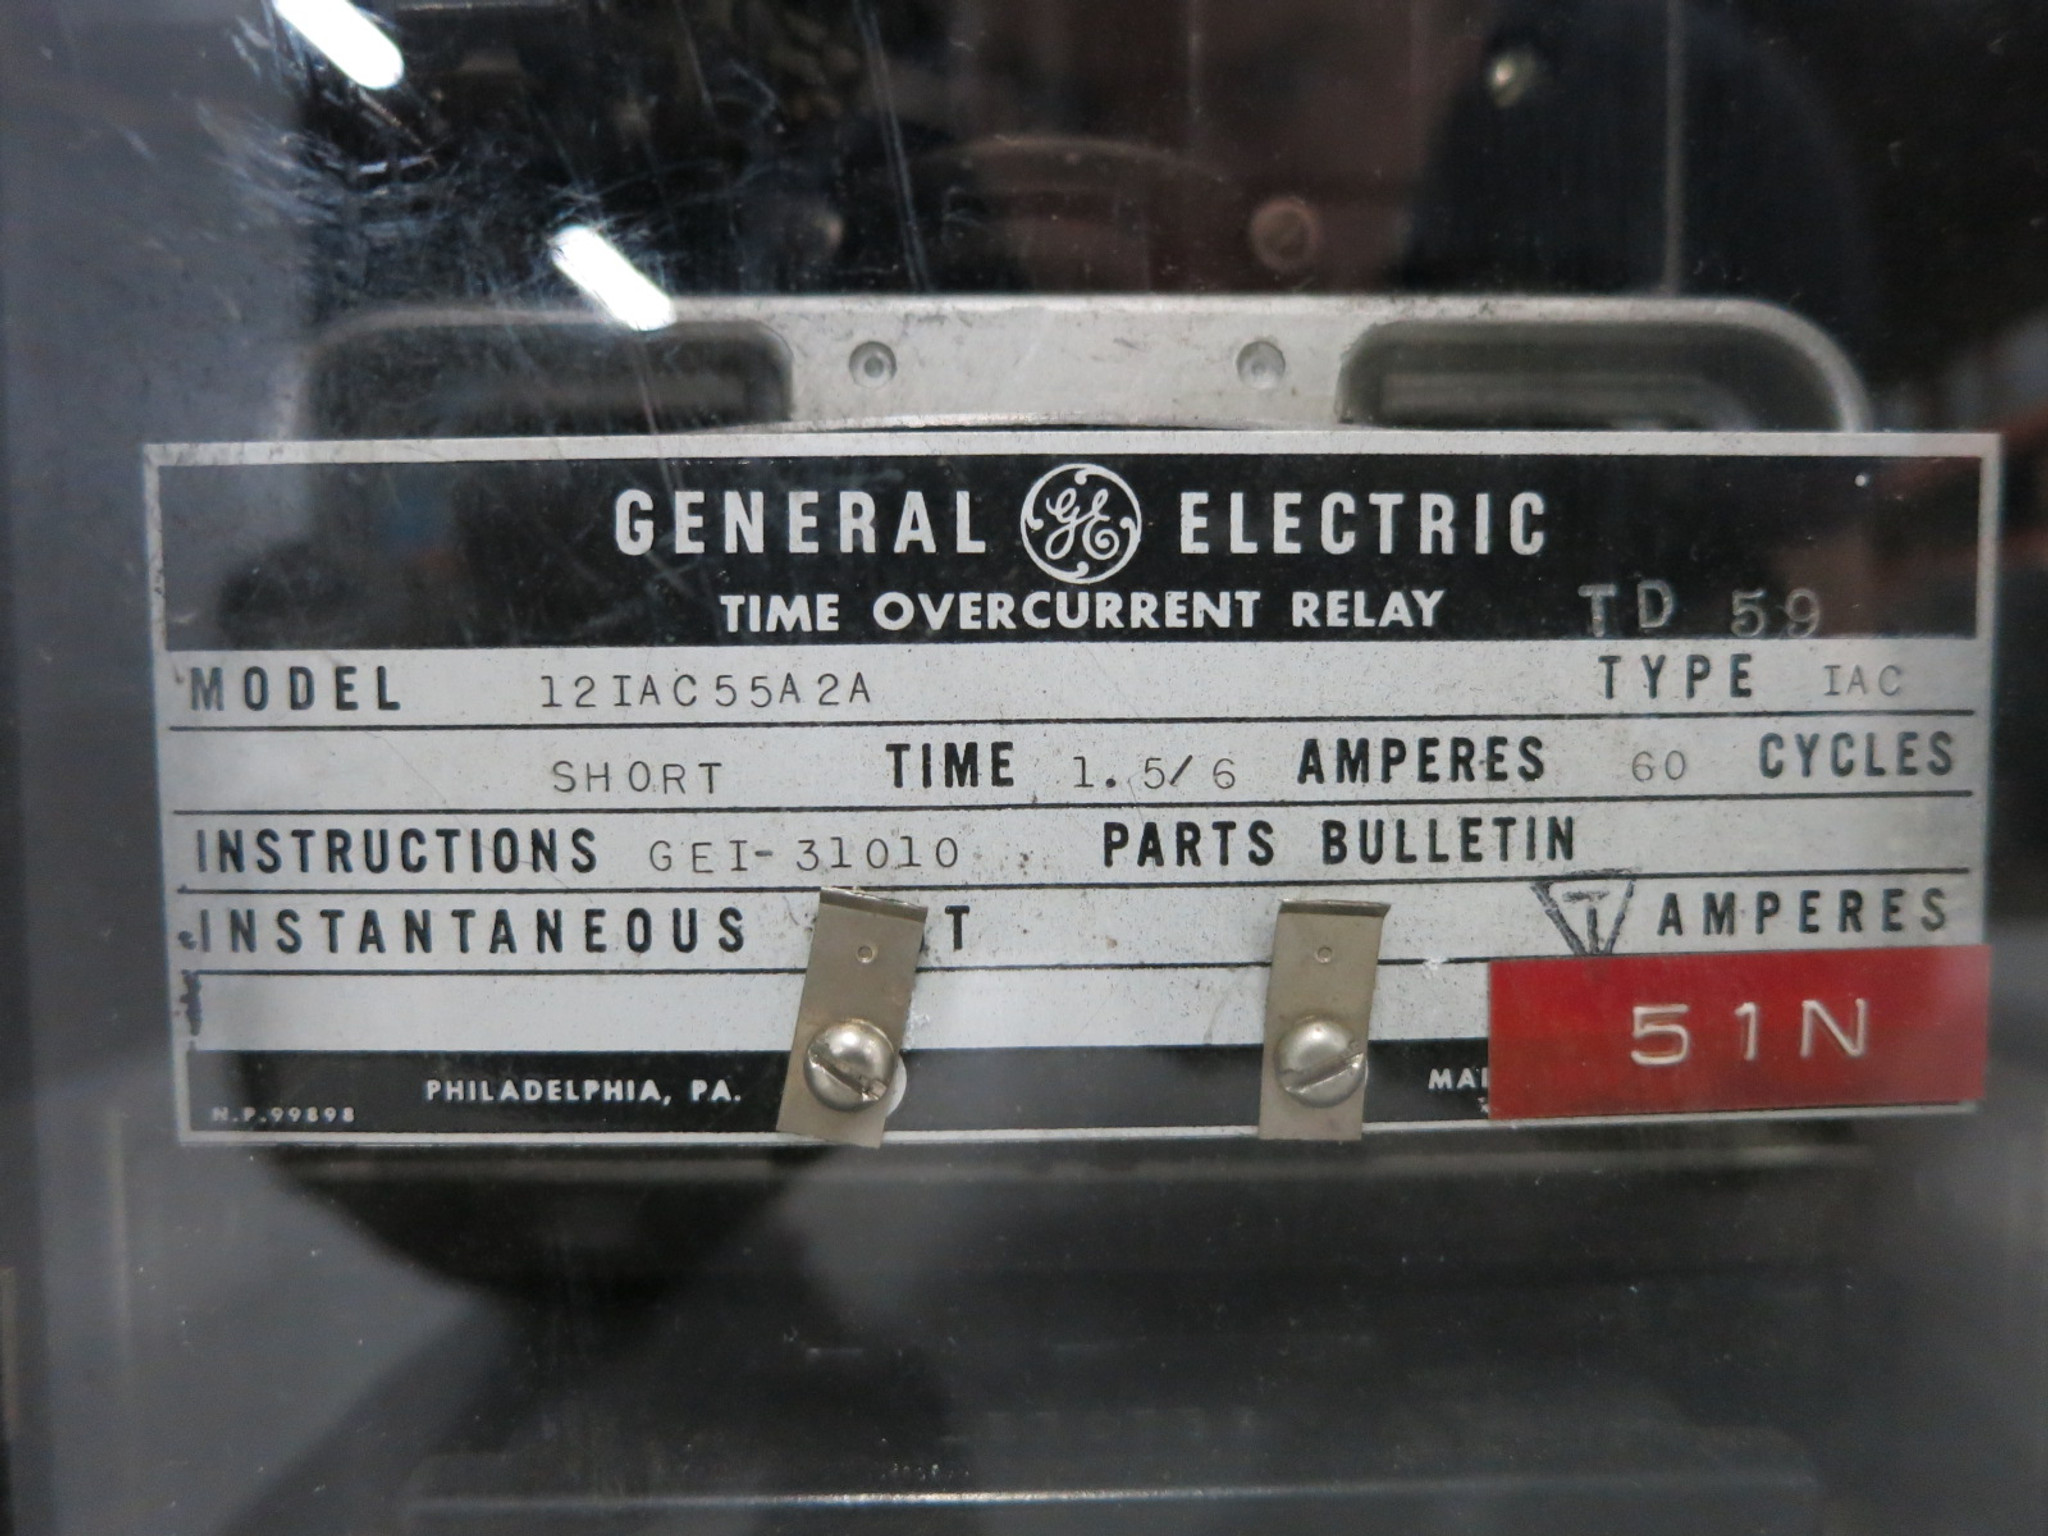 Ge 12iac55a2a Time Overcurrent Relay Type Iac 15 6 Amp General Electrical Https D3d71ba2asa5ozcloudfrontnet 12014161 Images Dw1100